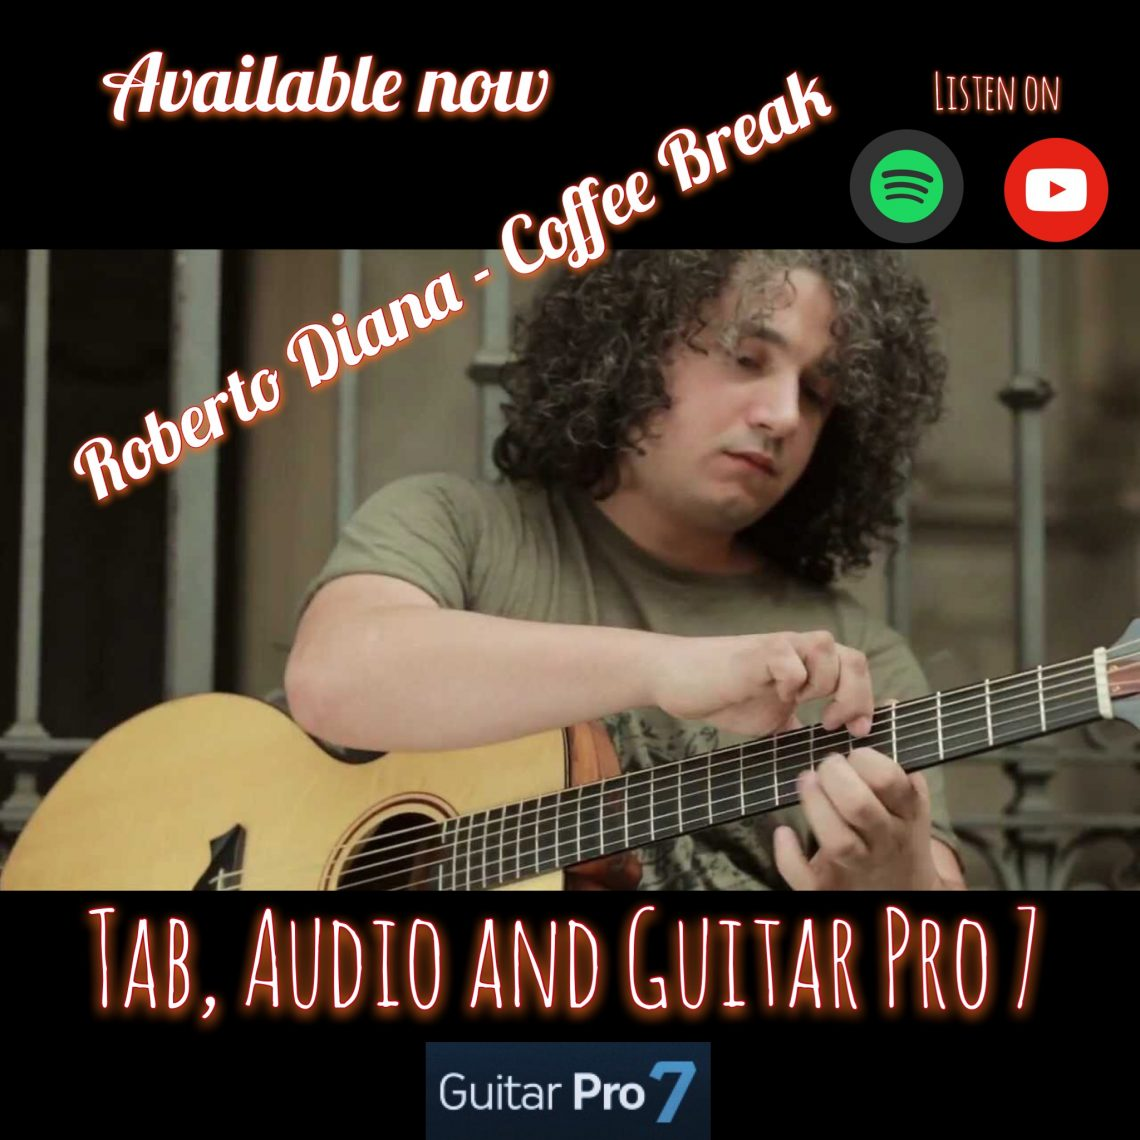 Coffee Break Acoustic Guitar TAB (ROBERTO DIANA) mcloughlin